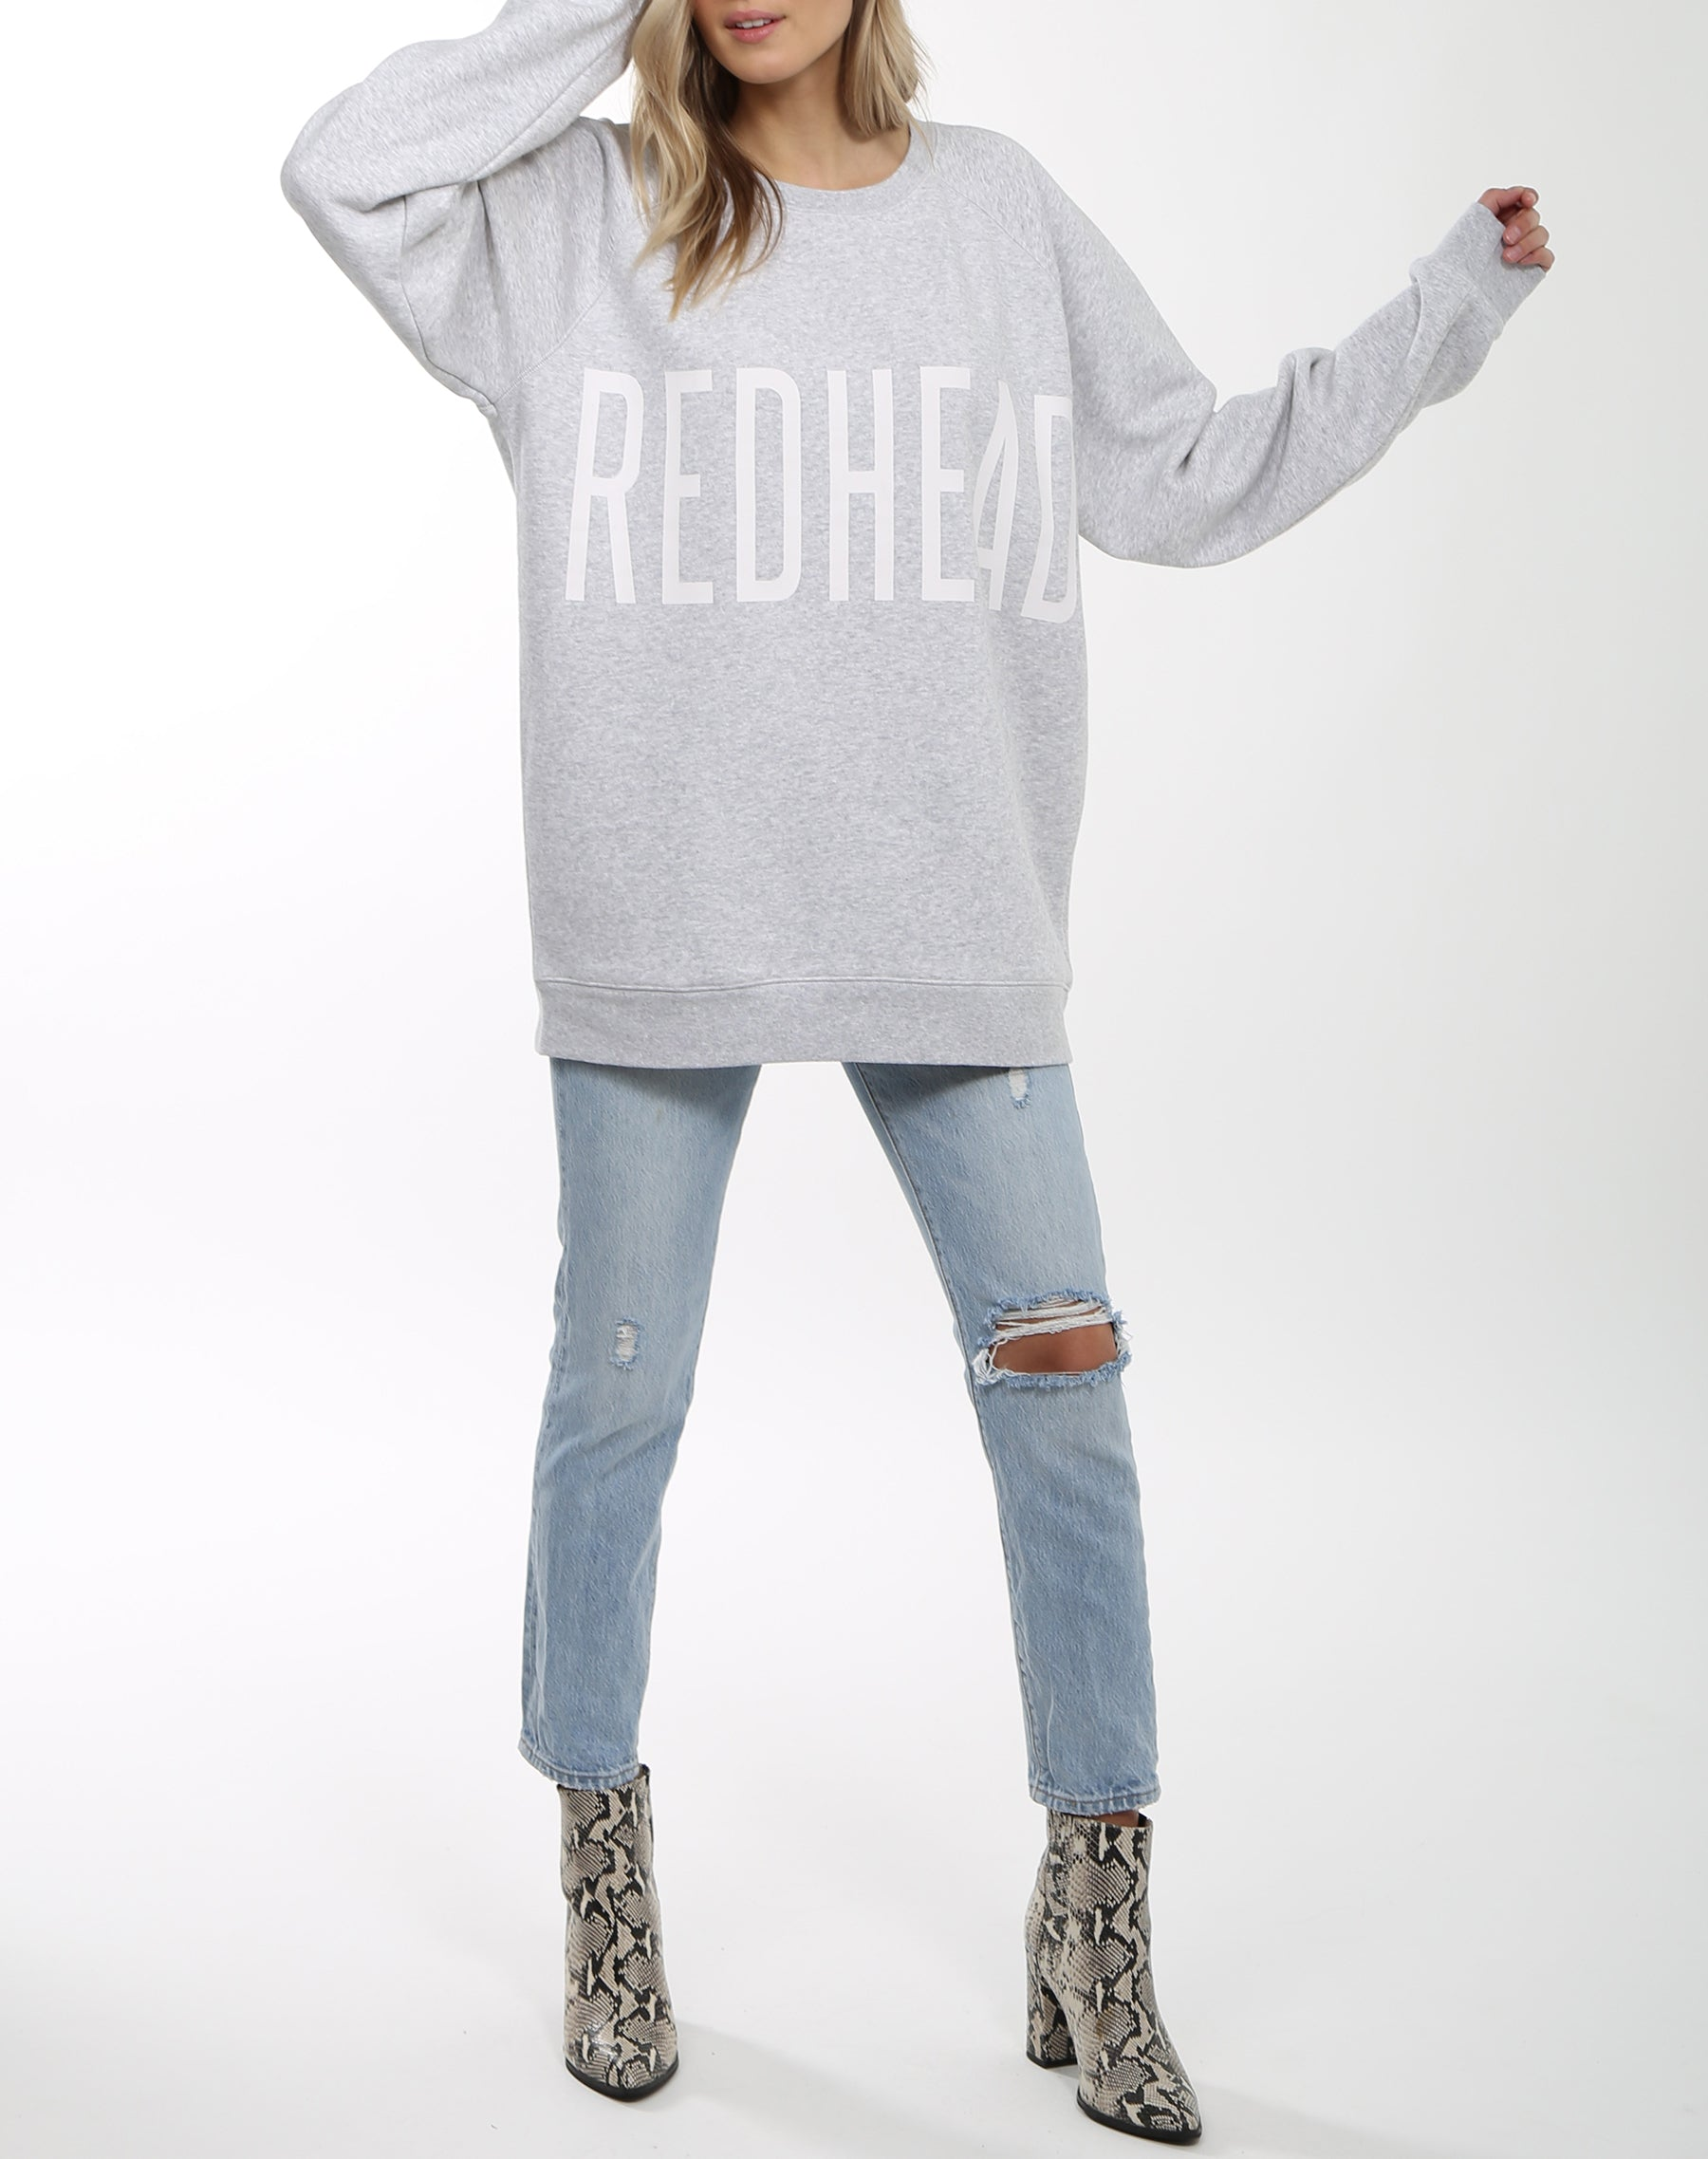 Photo 2 of the Redhead big sister crew neck sweatshirt in pebble grey by Brunette the Label.